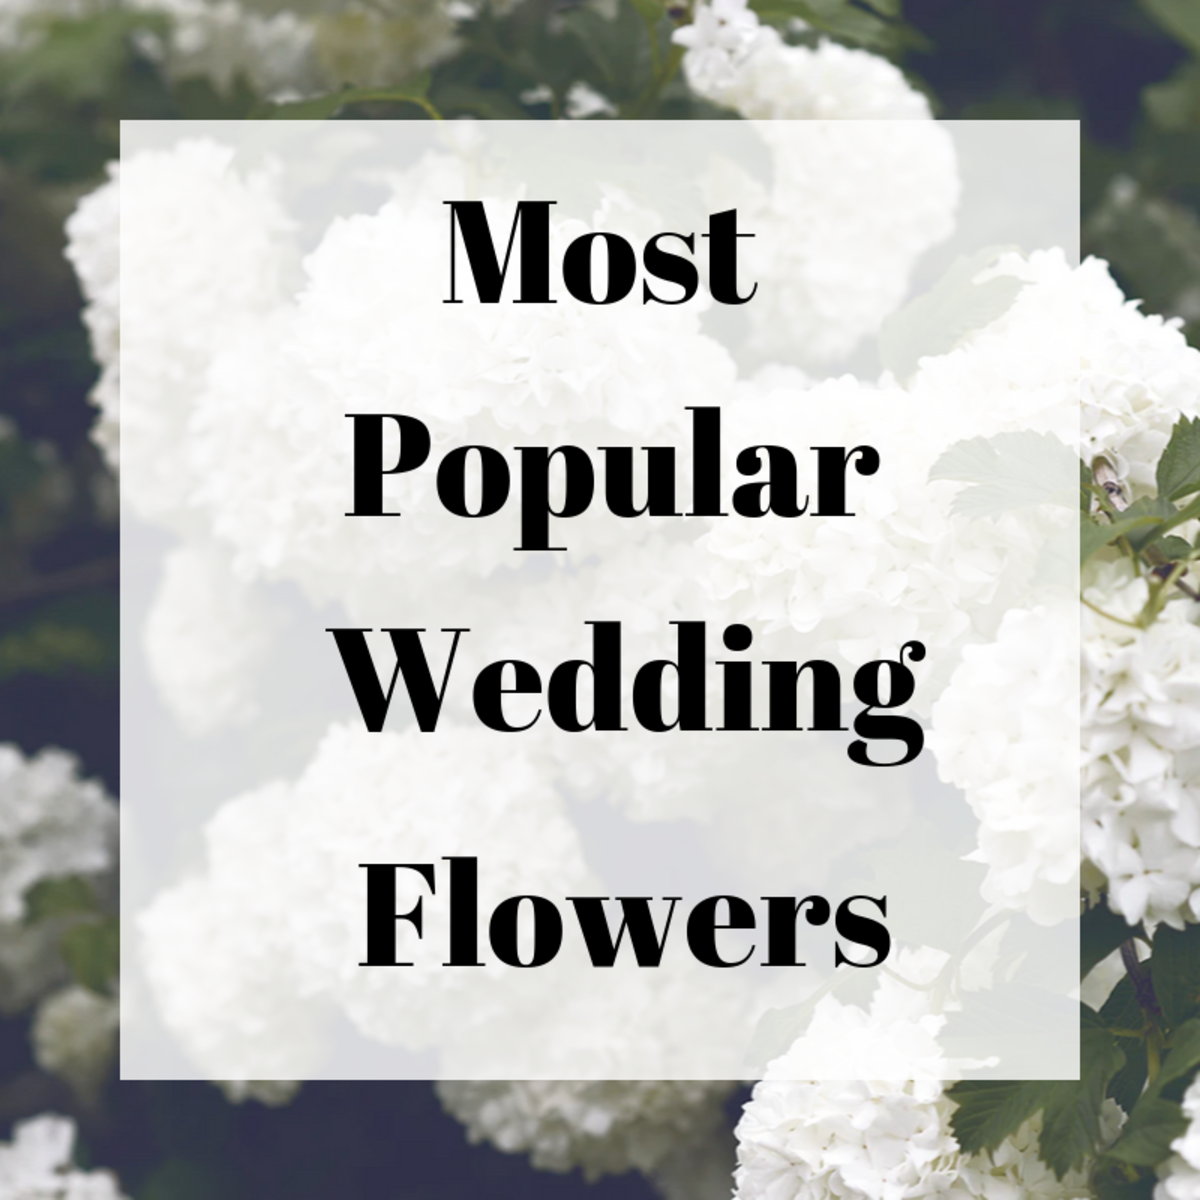 10 of the Most Popular Wedding Flowers, and What You Should Know Before Choosing Them